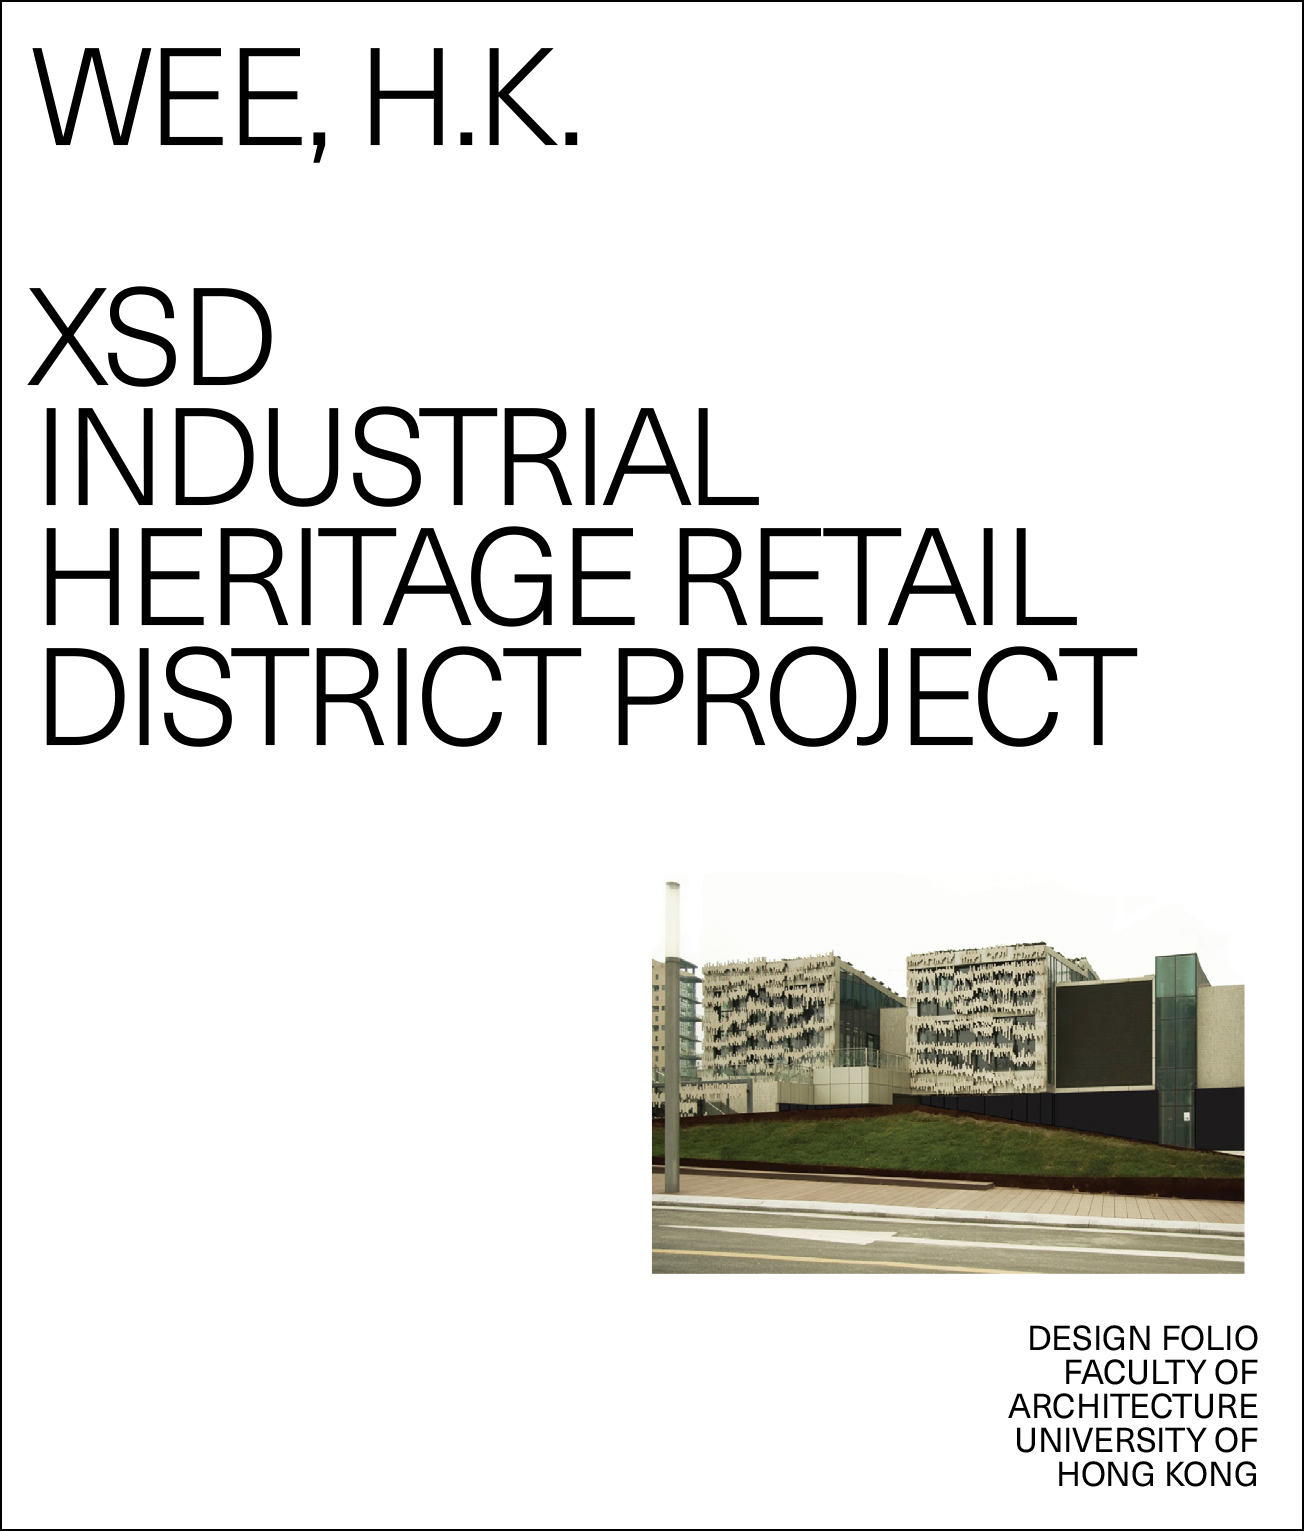 XSD Industrial Heritage Retail District Project